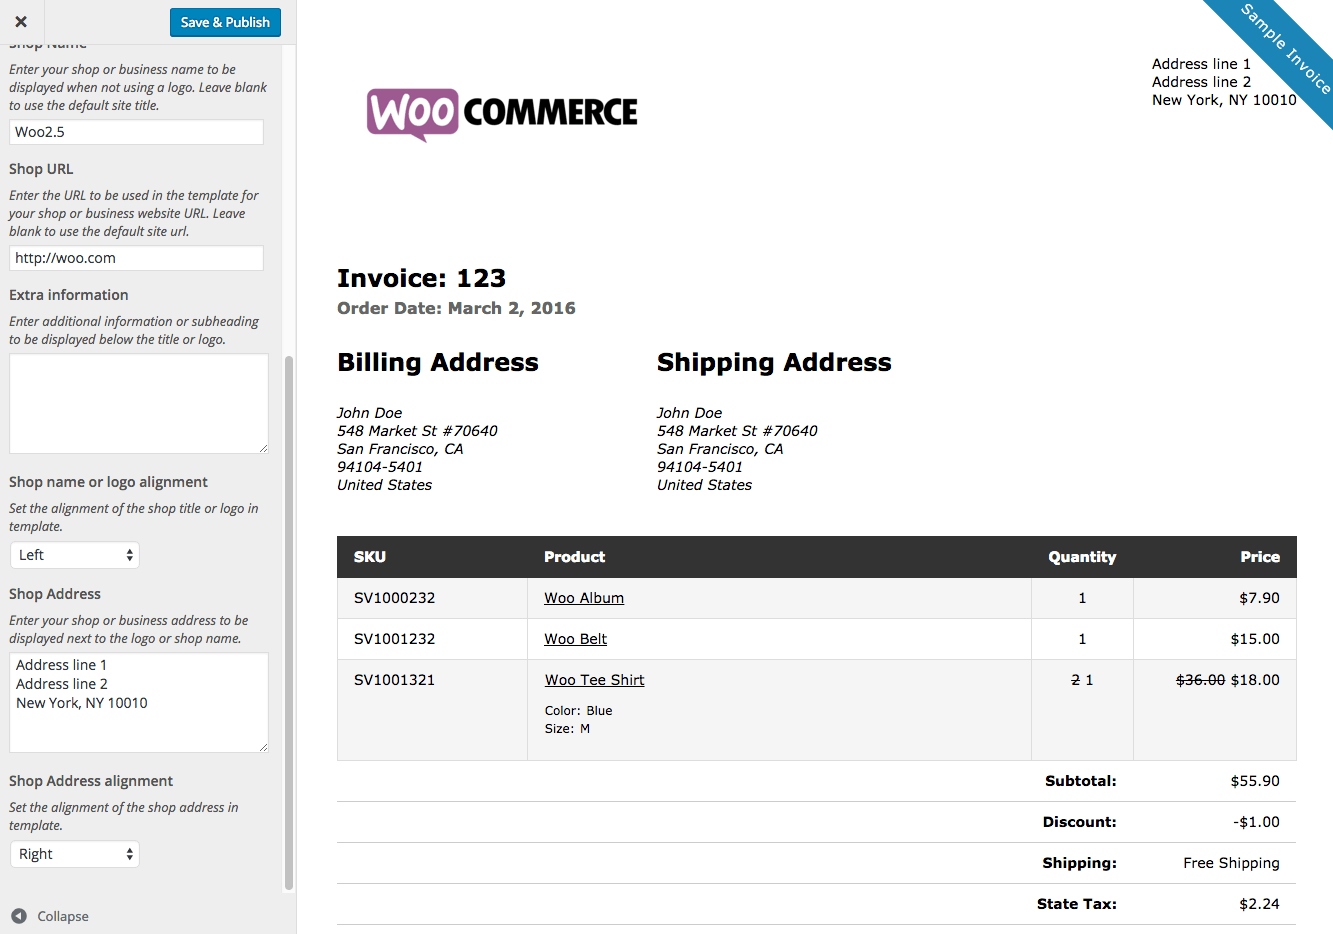 Pxworkoutfreeus  Inspiring Woocommerce Print Invoices Amp Packing Lists  Woocommerce Docs With Exciting Woocommerce Print Invoices  Packing Lists Customizer With Easy On The Eye Non Invoiced Also Nch Express Invoice In Addition Mechanics Invoice Template And Free Invoice Format In Word As Well As Small Business Invoicing Additionally Consultant Invoice From Docswoocommercecom With Pxworkoutfreeus  Exciting Woocommerce Print Invoices Amp Packing Lists  Woocommerce Docs With Easy On The Eye Woocommerce Print Invoices  Packing Lists Customizer And Inspiring Non Invoiced Also Nch Express Invoice In Addition Mechanics Invoice Template From Docswoocommercecom